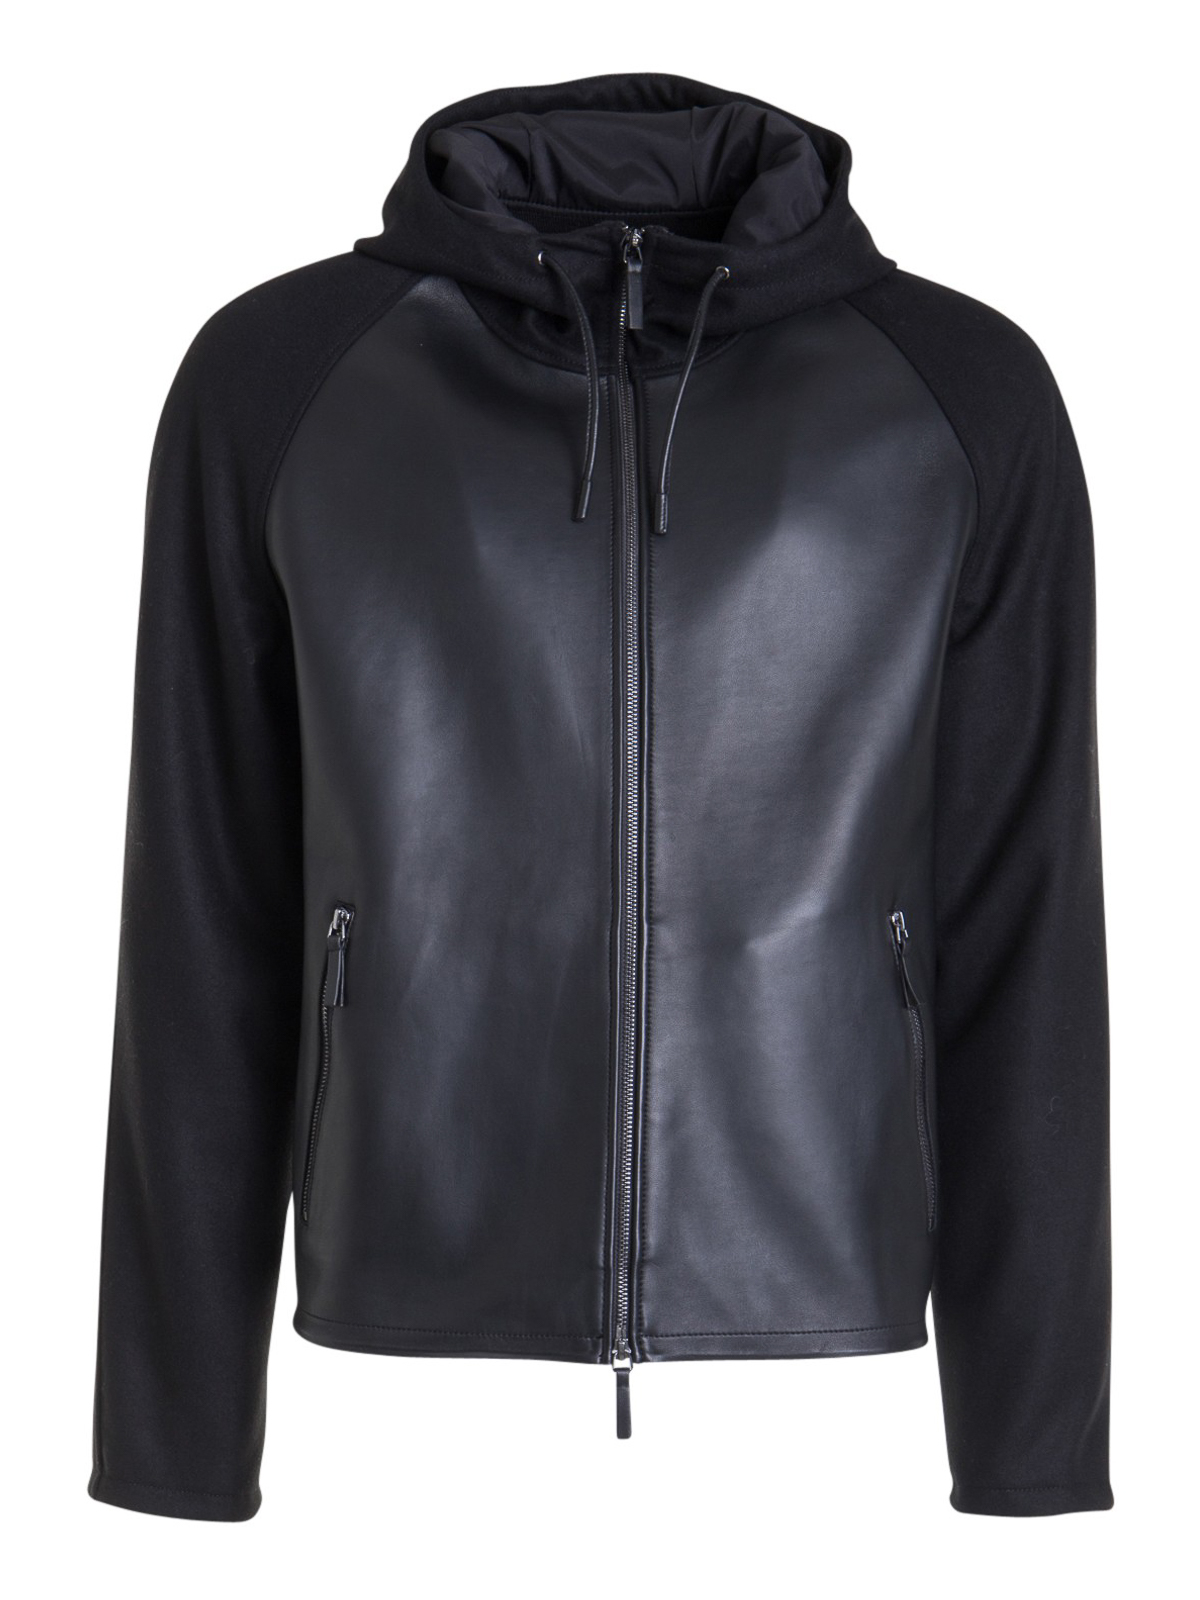 Emporio Armani WOOL BLEND DETAIL LEATHER JACKET